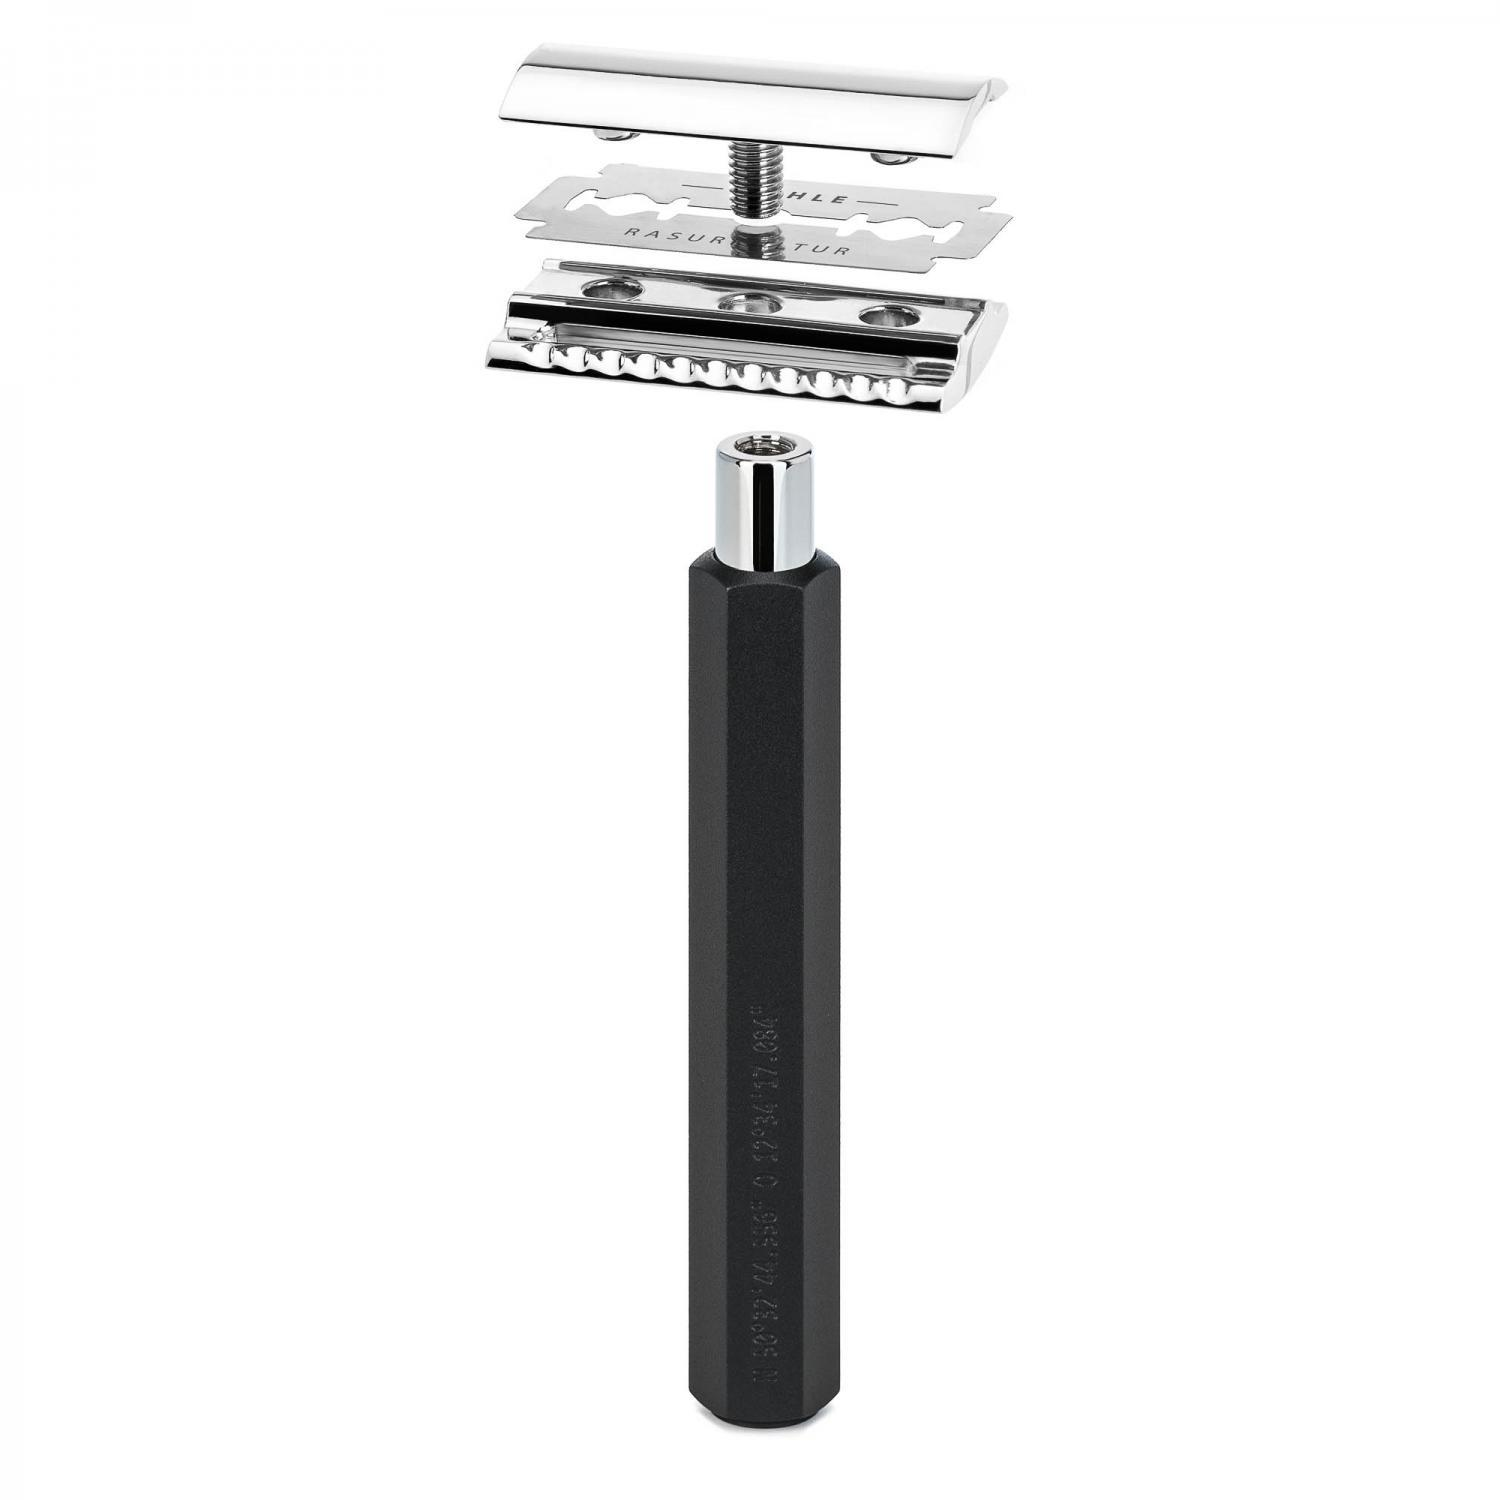 MUHLE HEXAGON Graphite Safety Razor